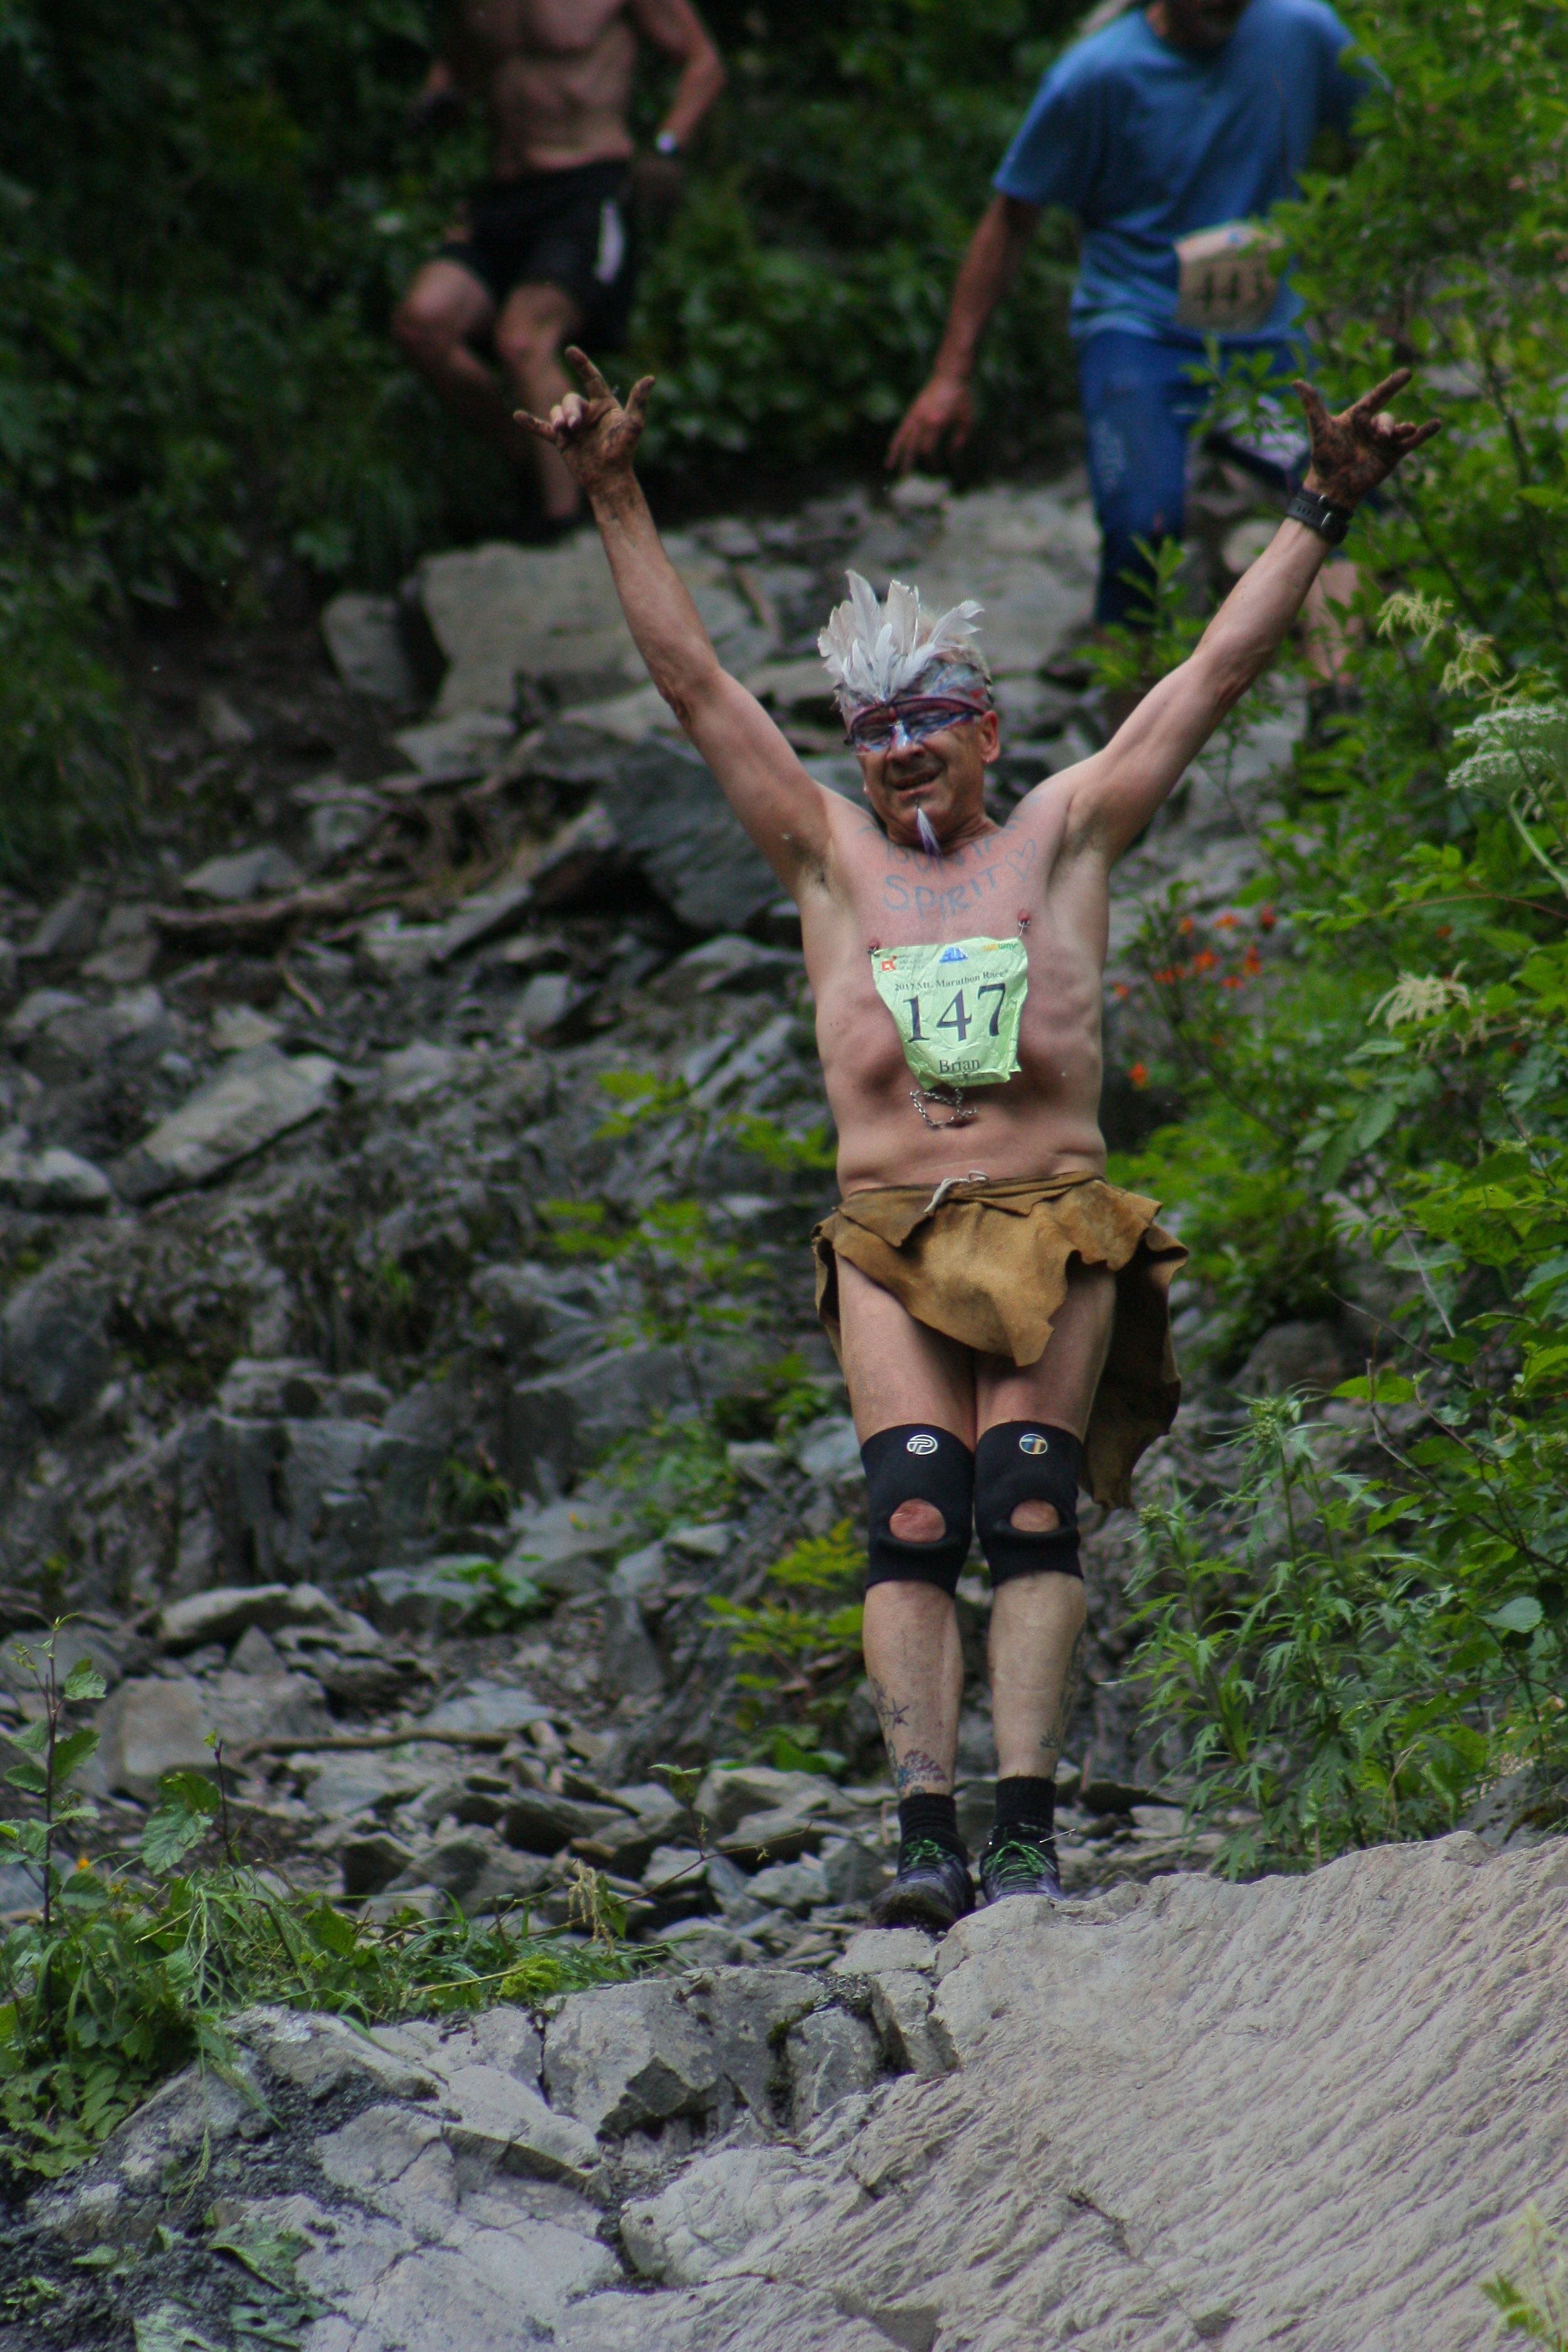 Anchorage mountain runner Brian Stoecker, known to many as 'Birdman', poses for the crowd in his characteristic loincloth and feather headpiece during the 2017 Mount Marathon Race.